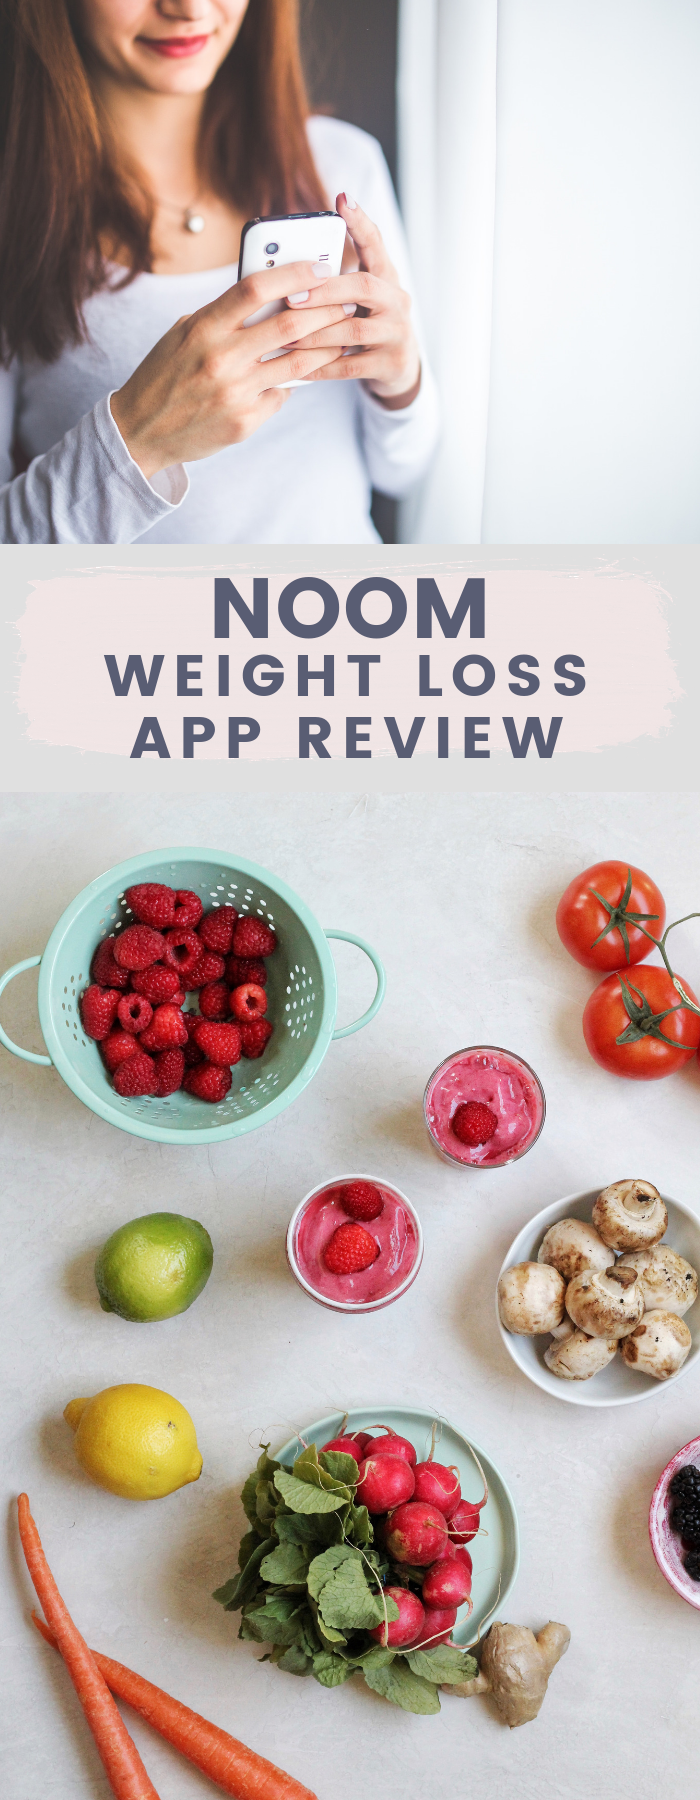 I tried Noom, the popular health and weight loss smartphone app, for 3 weeks. Read this post for an honest and thorough Noom review, and a delicious and refreshing Tropical Raspberry Smoothie from Noom!